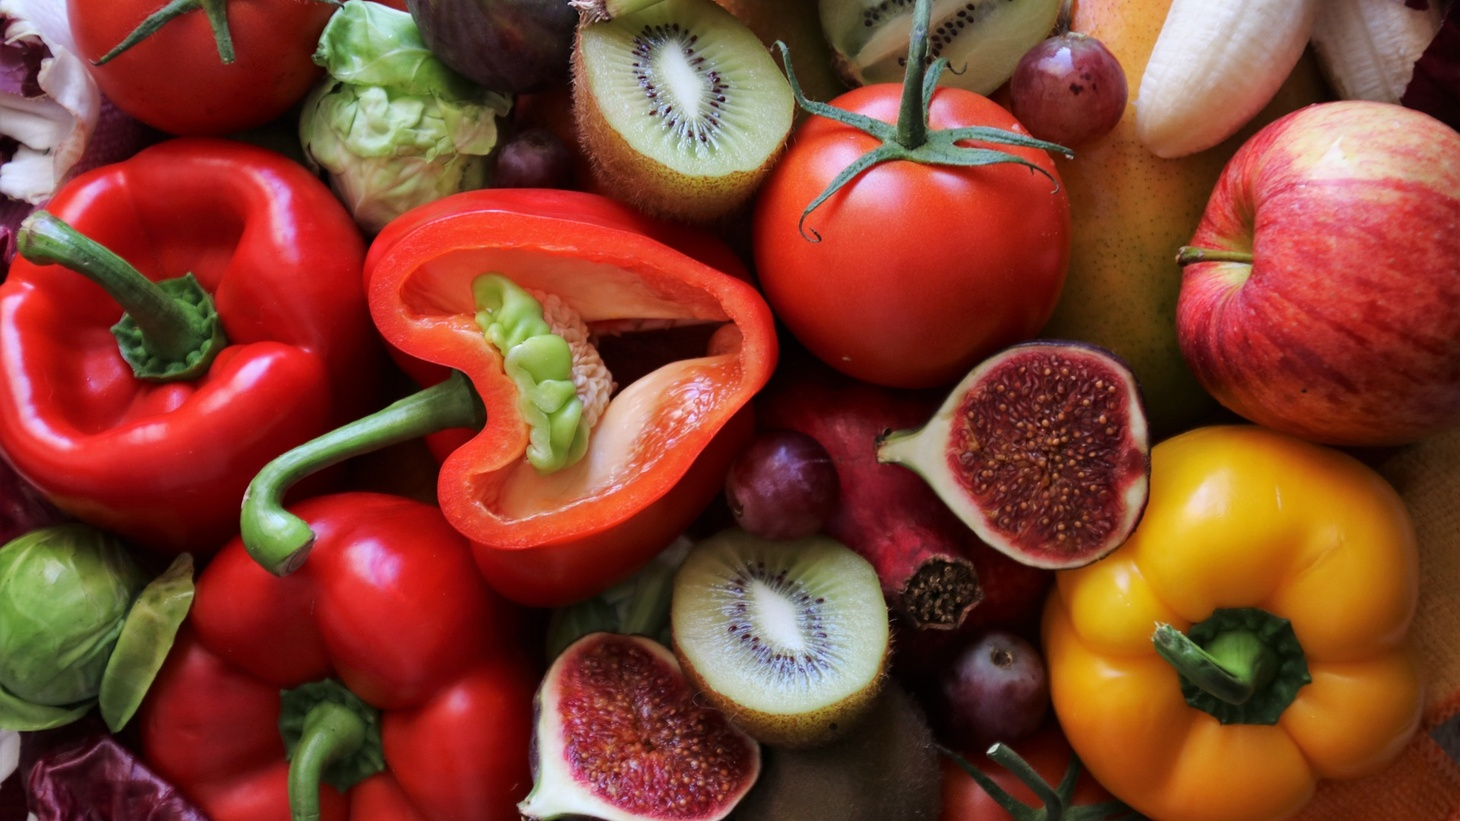 Figs, bell peppers, tomatoes, apples, and other produce.